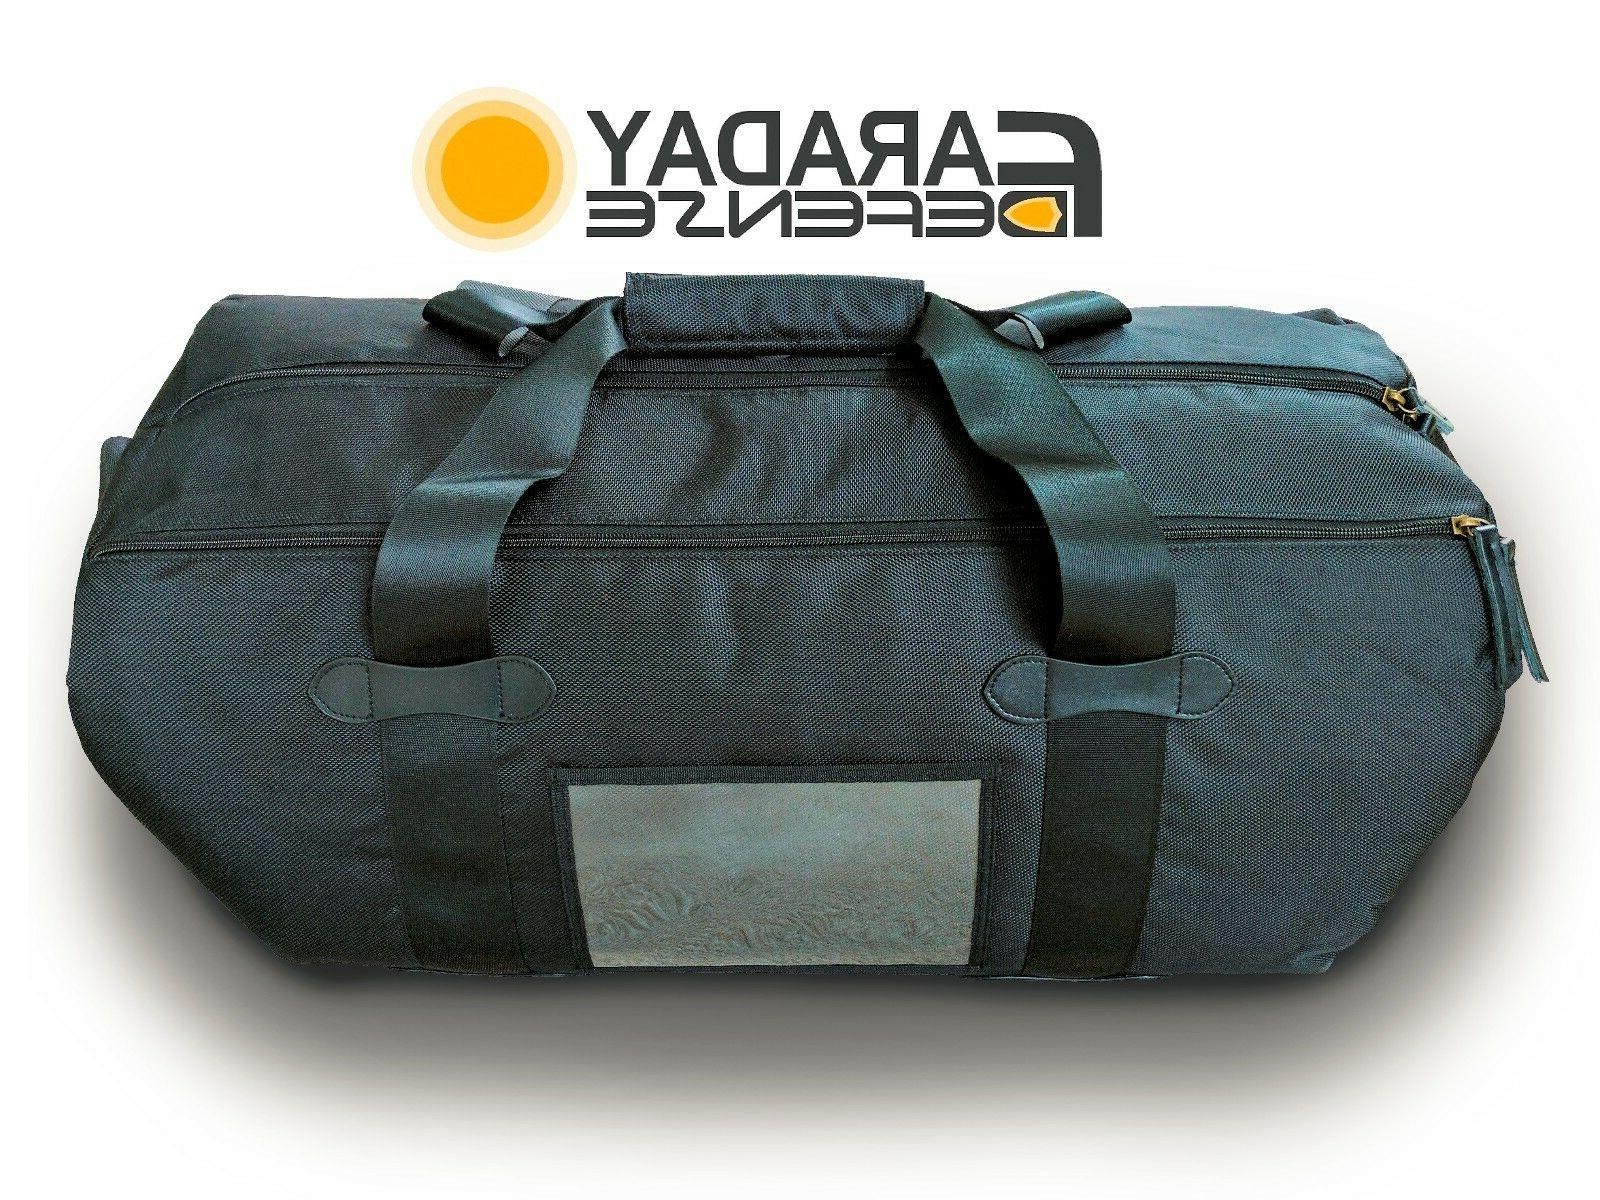 Faraday Cage Duffel Bag XL Black Canvas Shielding GPS WiFi S